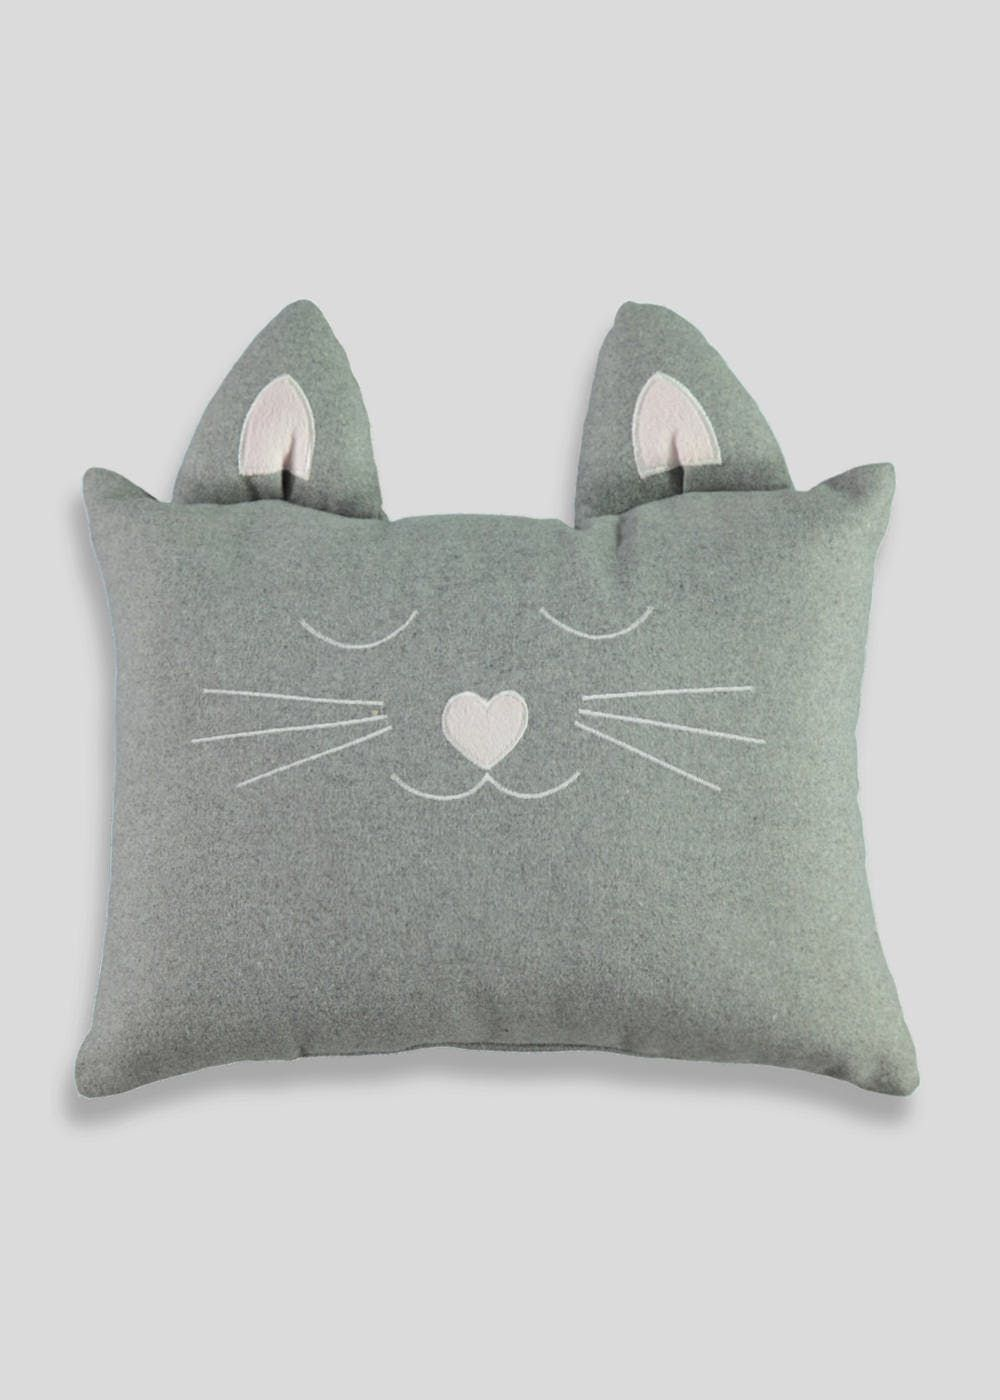 This super cute cat shaped cushion in grey has 3D ears and embroidered  whiskers. Dimensions 1915bfa24e